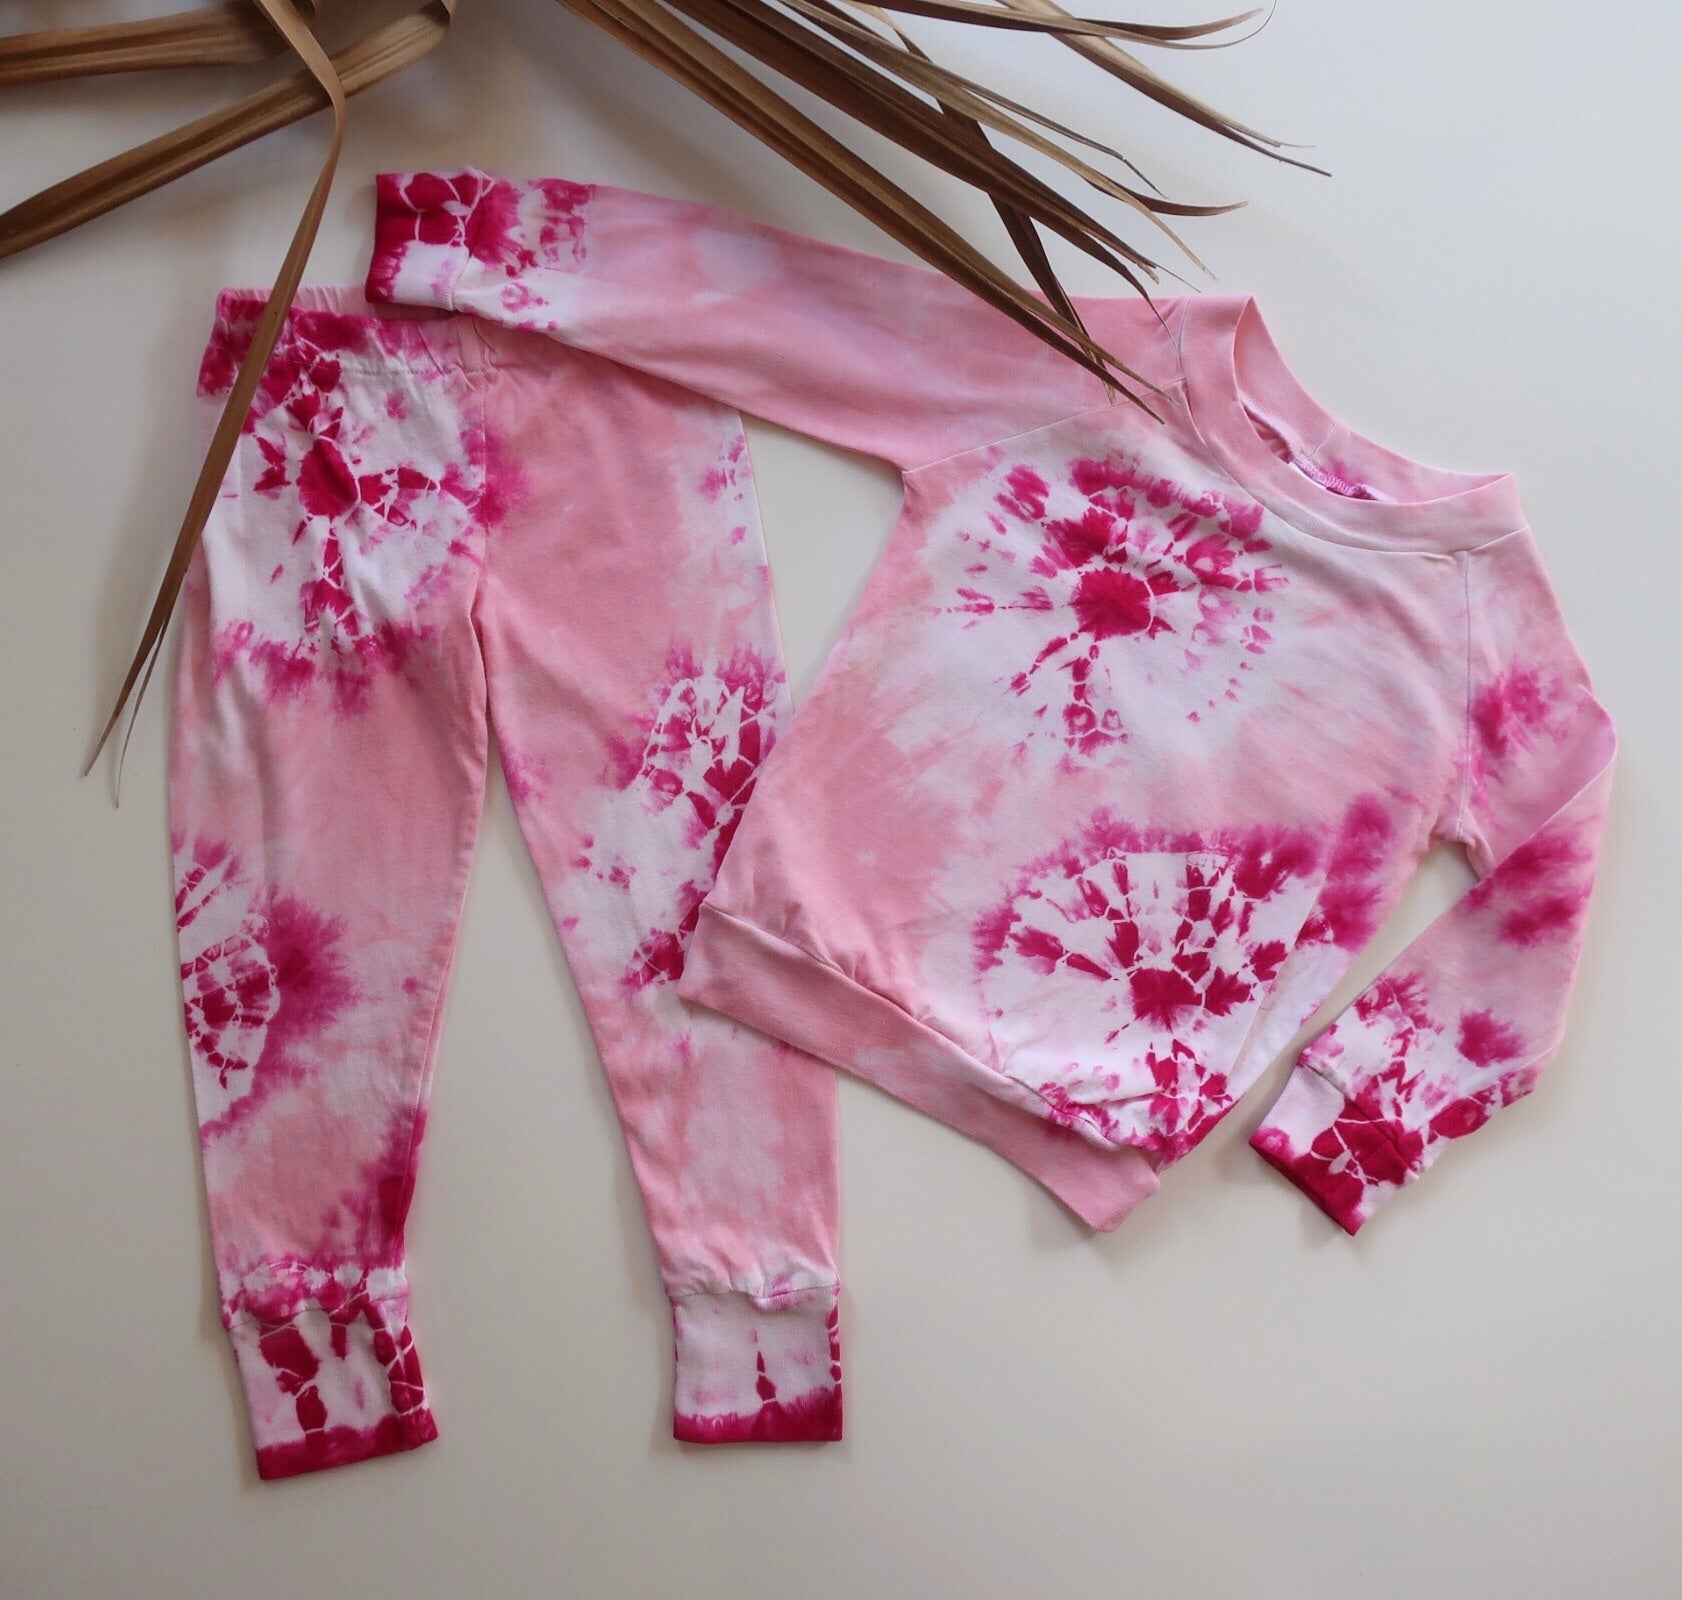 Handmade Organic Cotton Kids Pyjamas